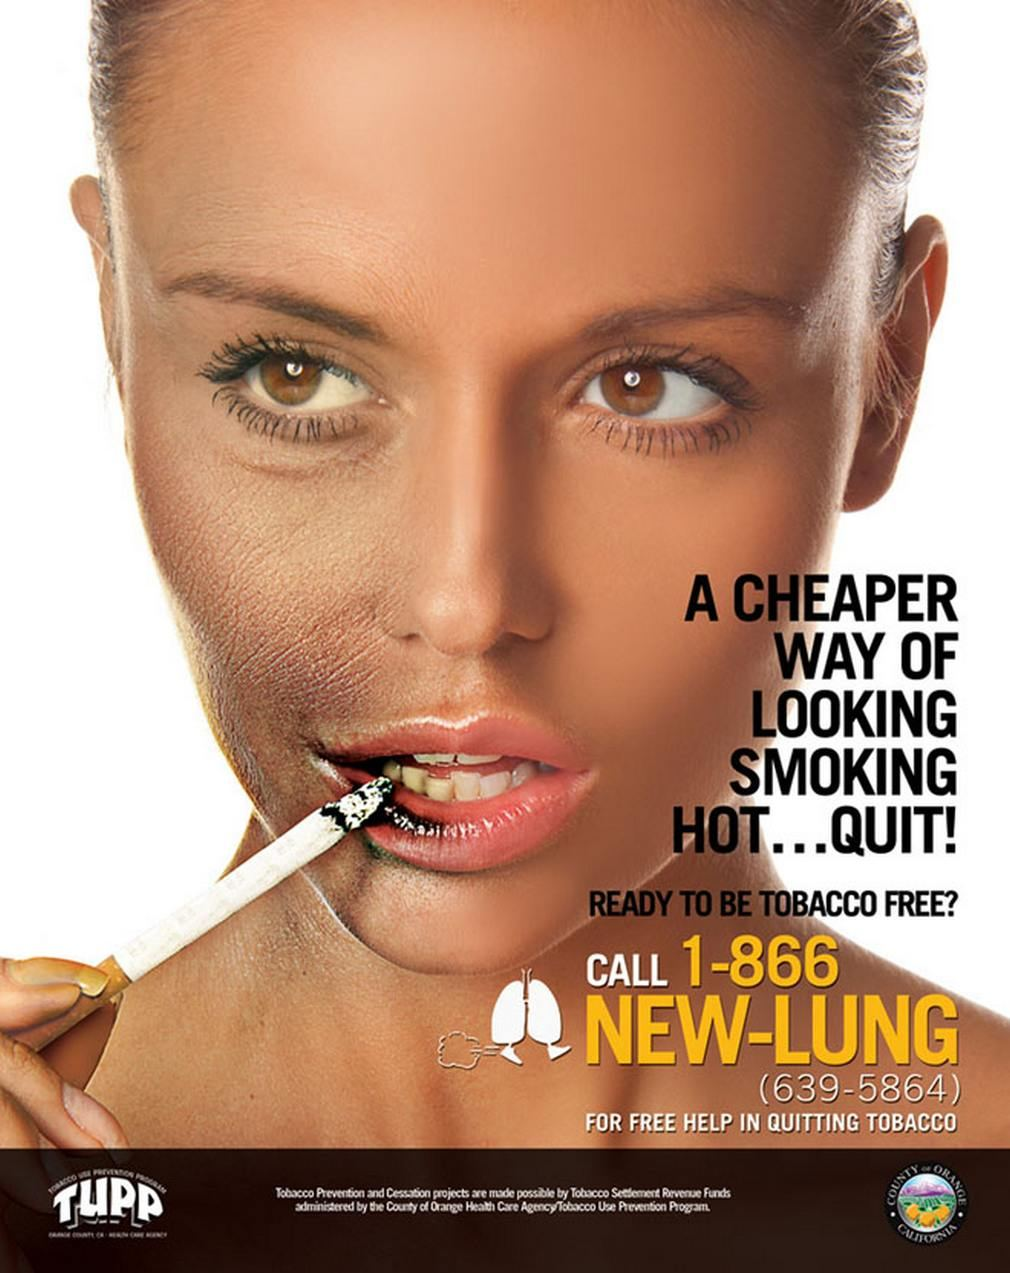 anti smoking ad essay Read anti smoking free essay and over 88,000 other research documents anti smoking about 50 million people in the united states alone currently smoke a total of 570.